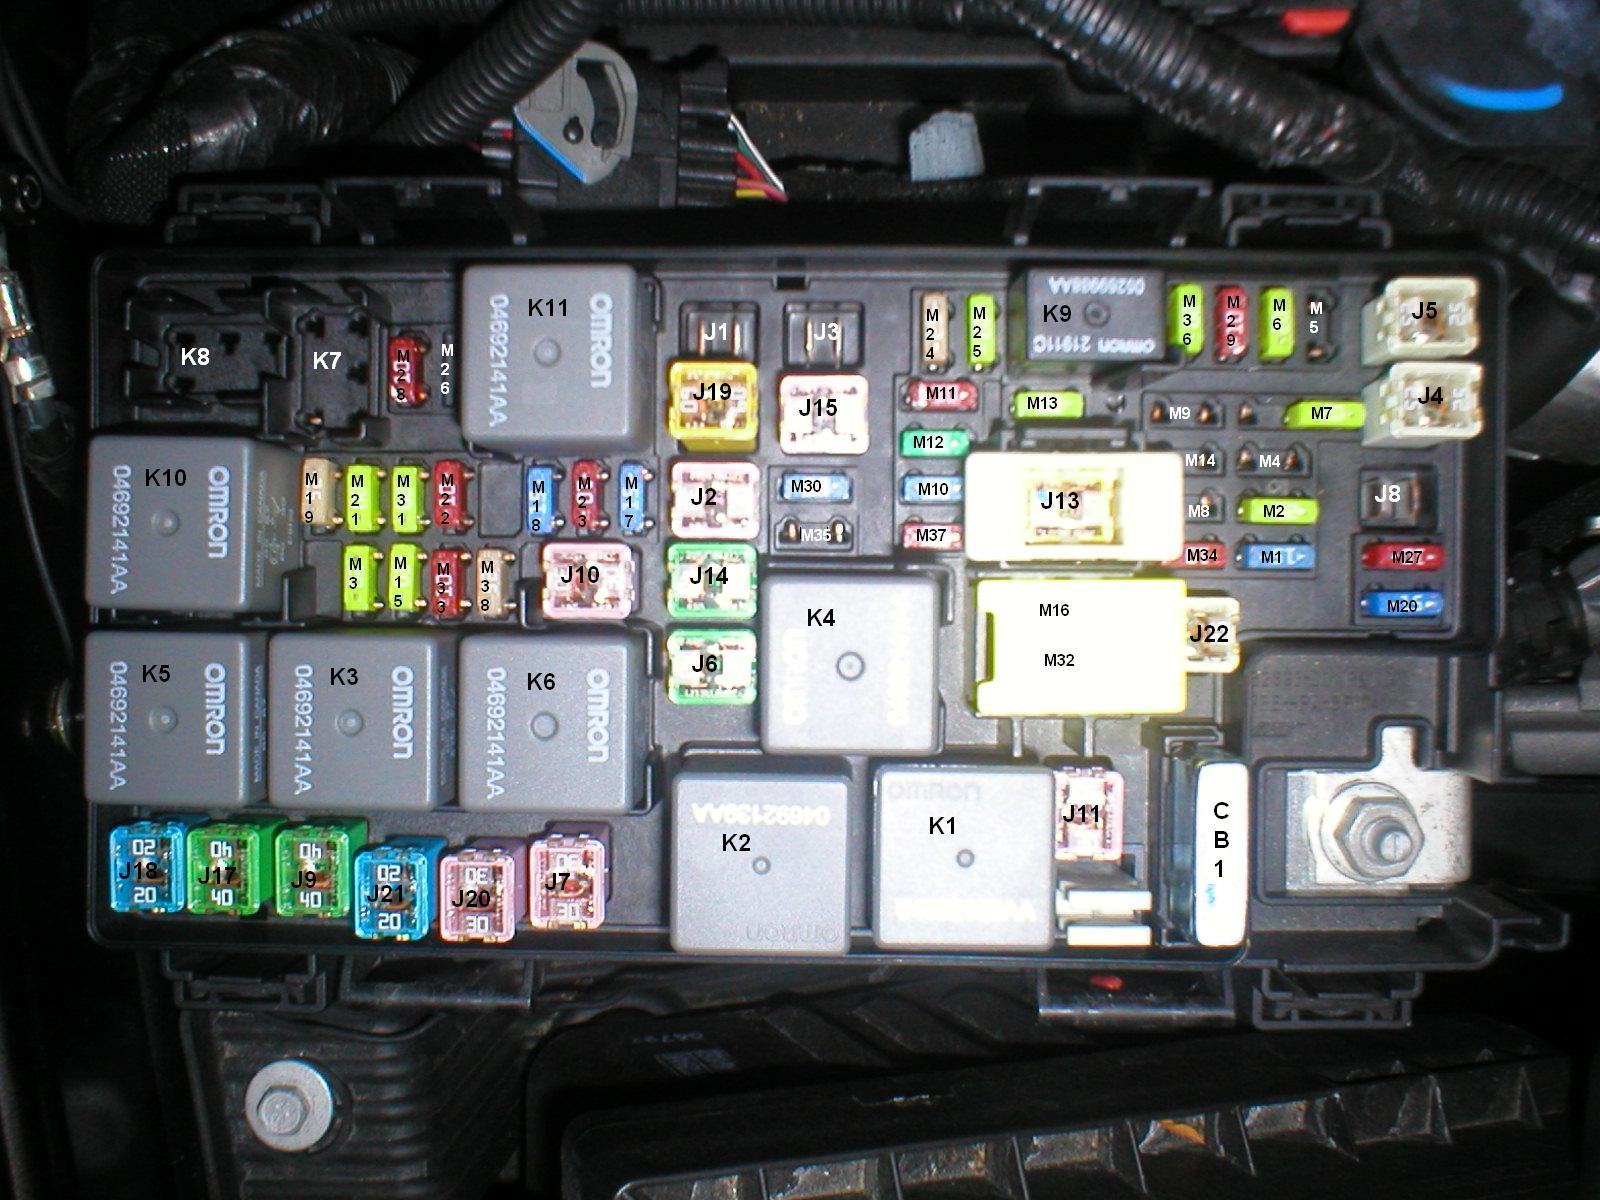 hight resolution of jeep jk fuse box map layout diagram jeepforum com 2007 bmw 328xi fuse box location 2007